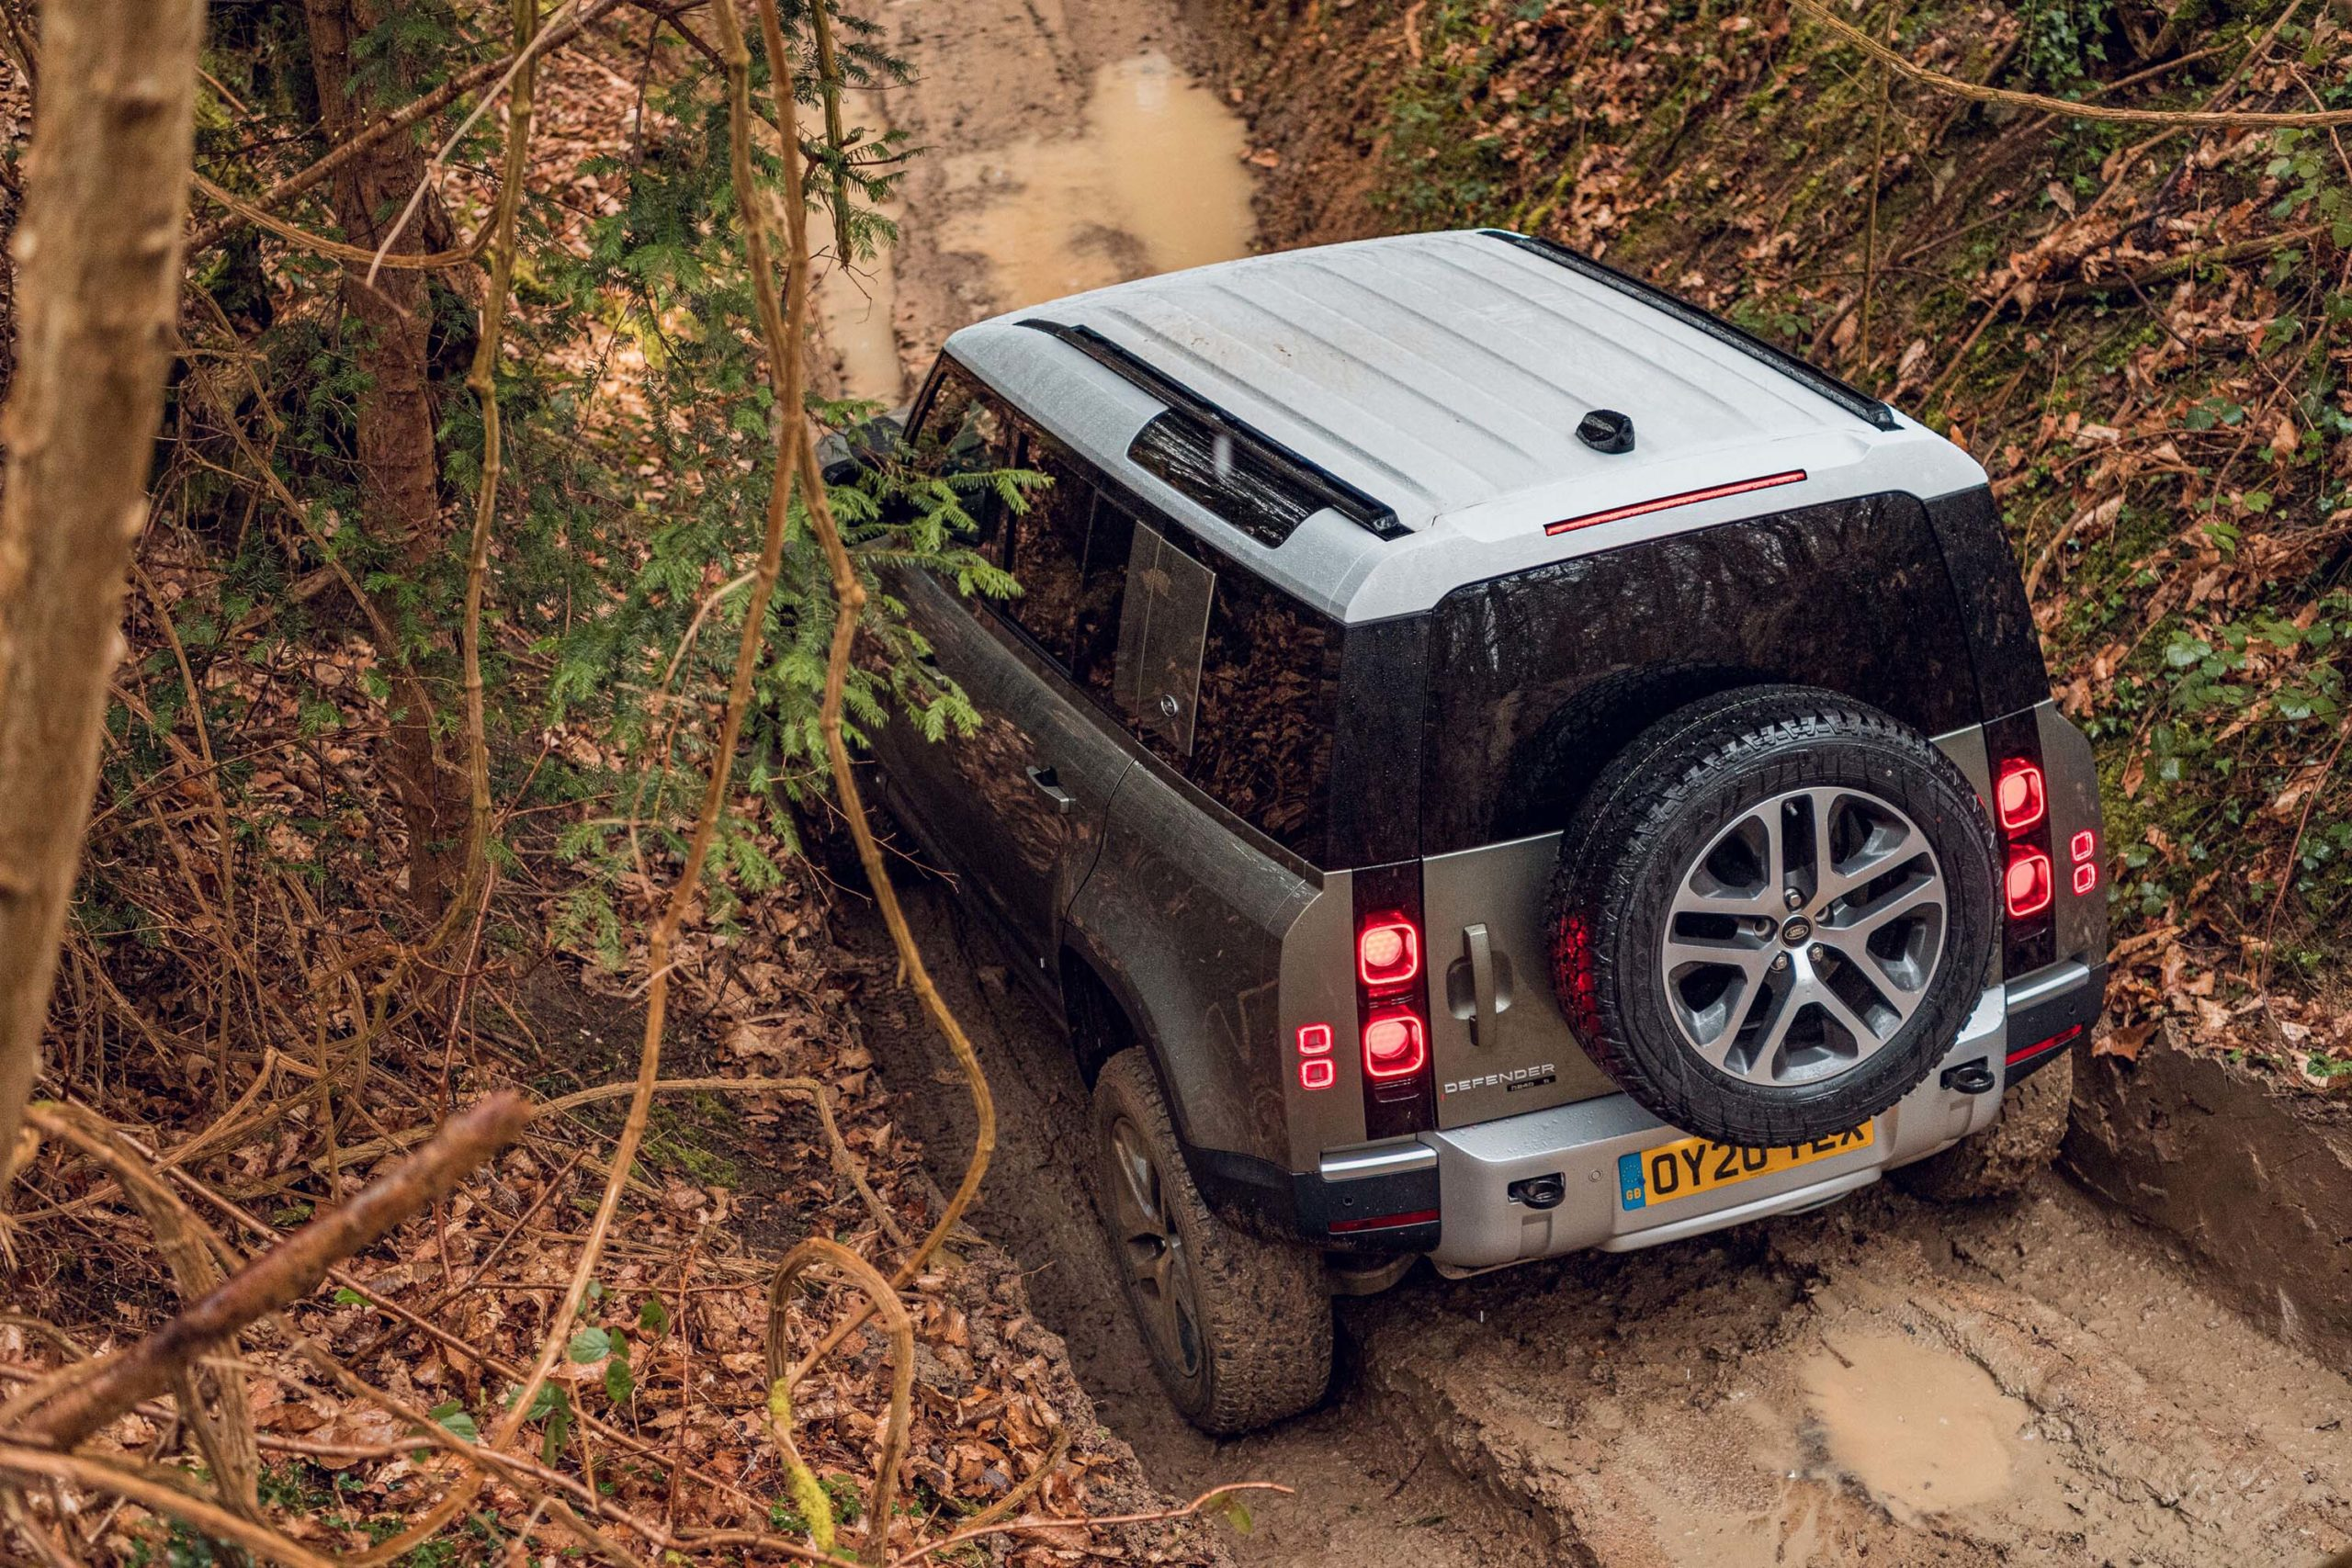 2020-LAnd-Rover-Defender-off-road-rear